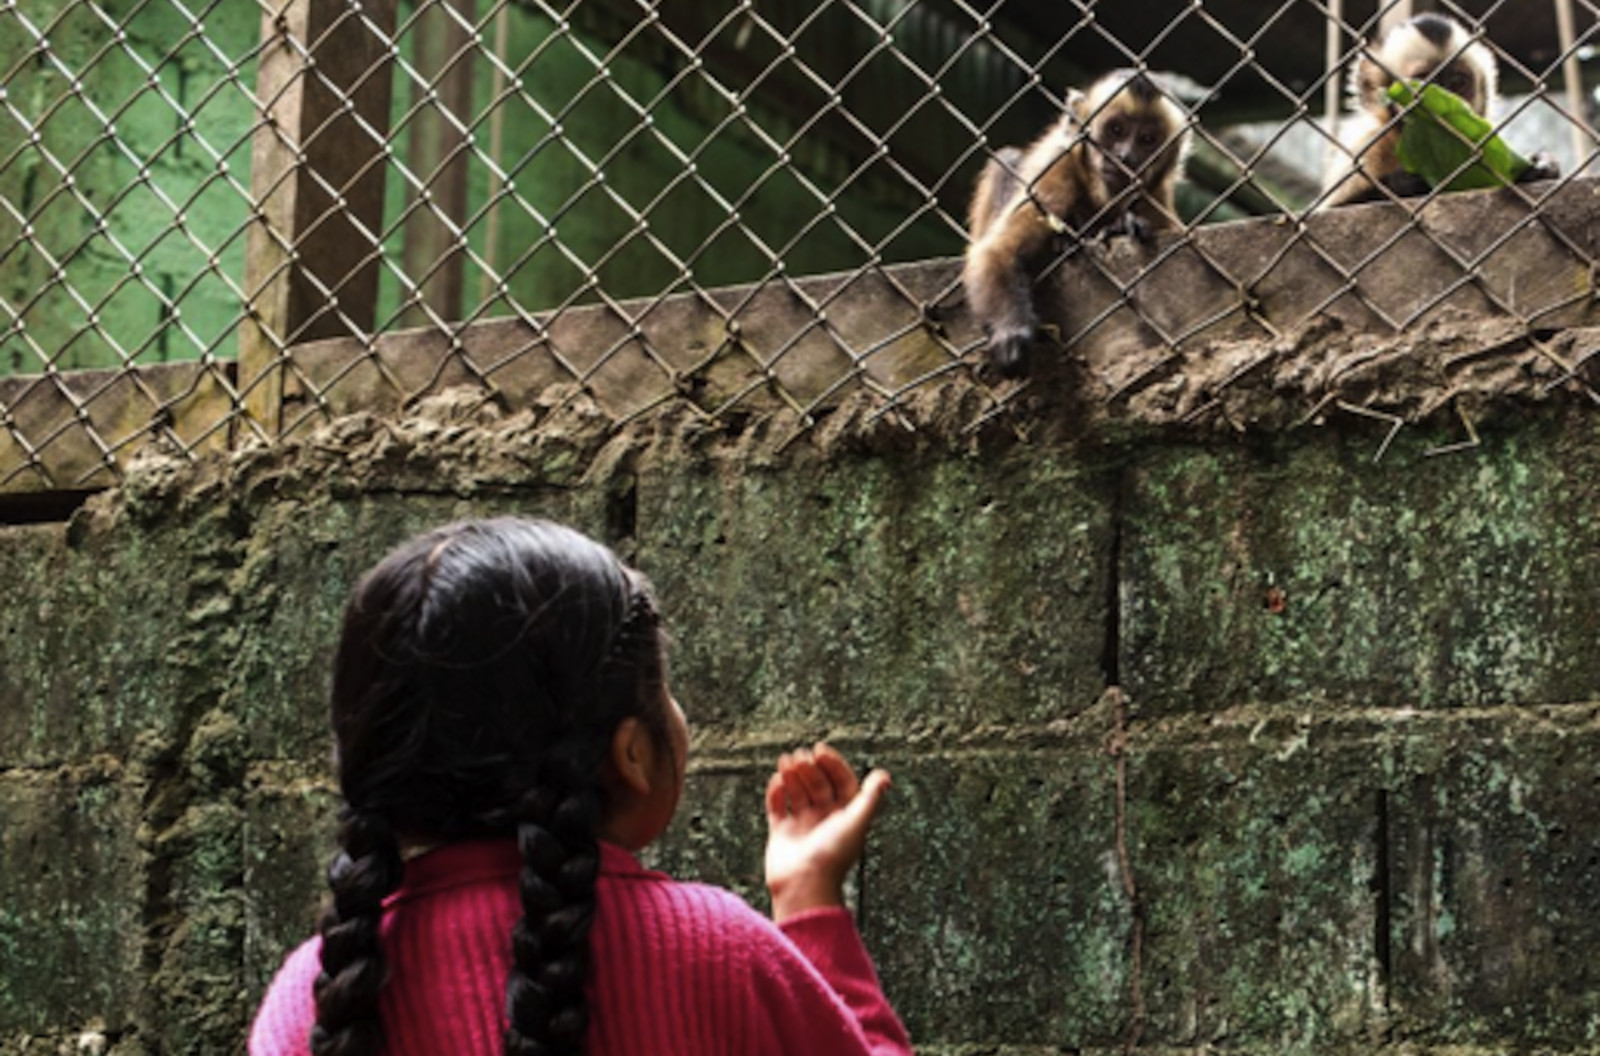 Imprisoned Monkey Reaching Out to Young Girl Shows That Animals Don't Belong in Zoos